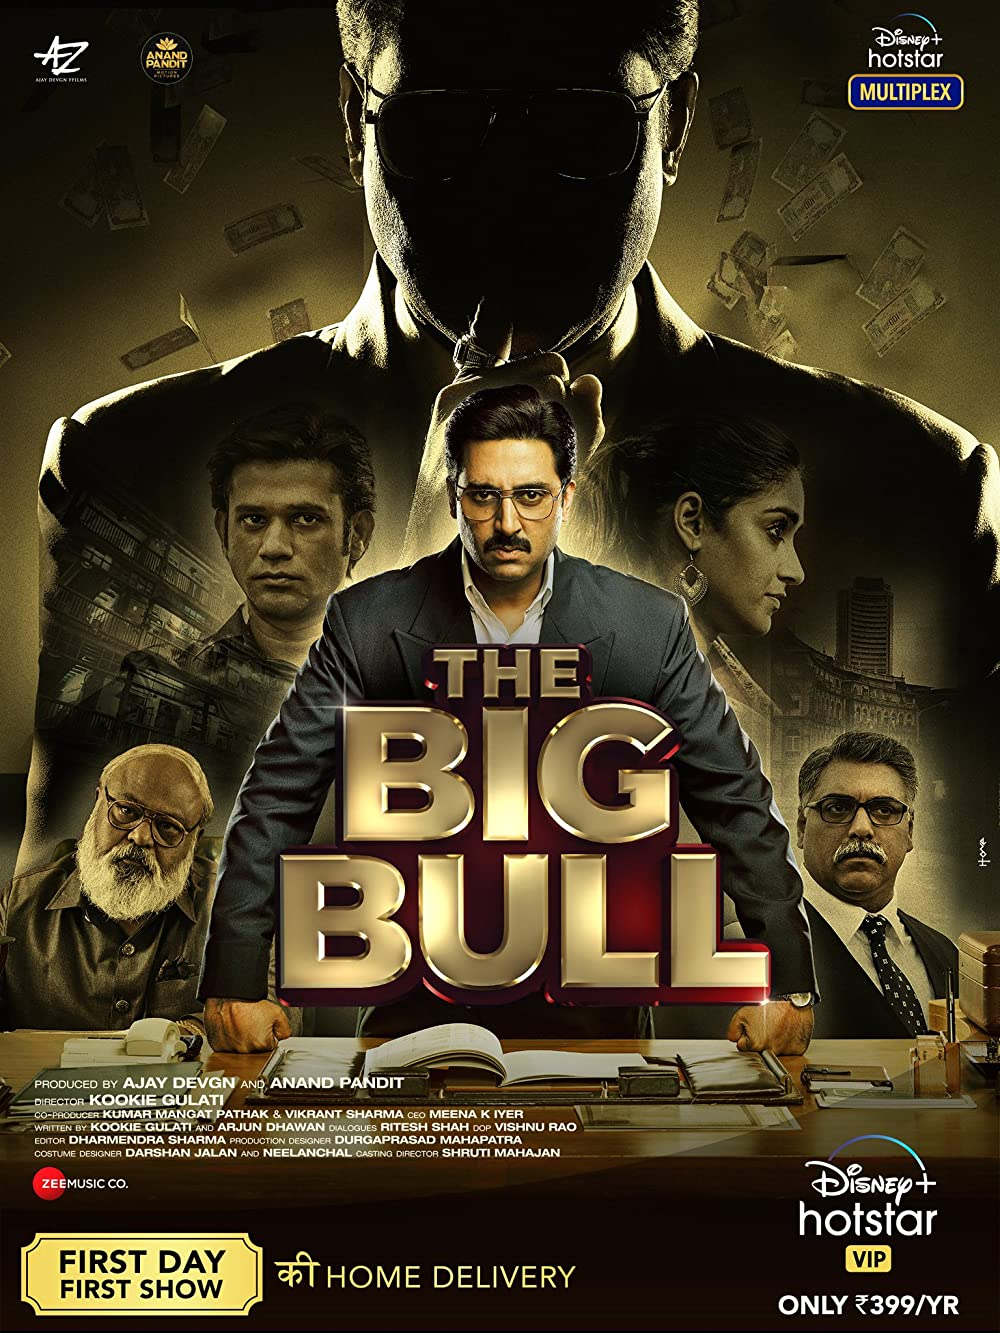 The Big Bull 2021 Hindi Movie 1080p DSNP HDRip ESubs 2.21GB Download